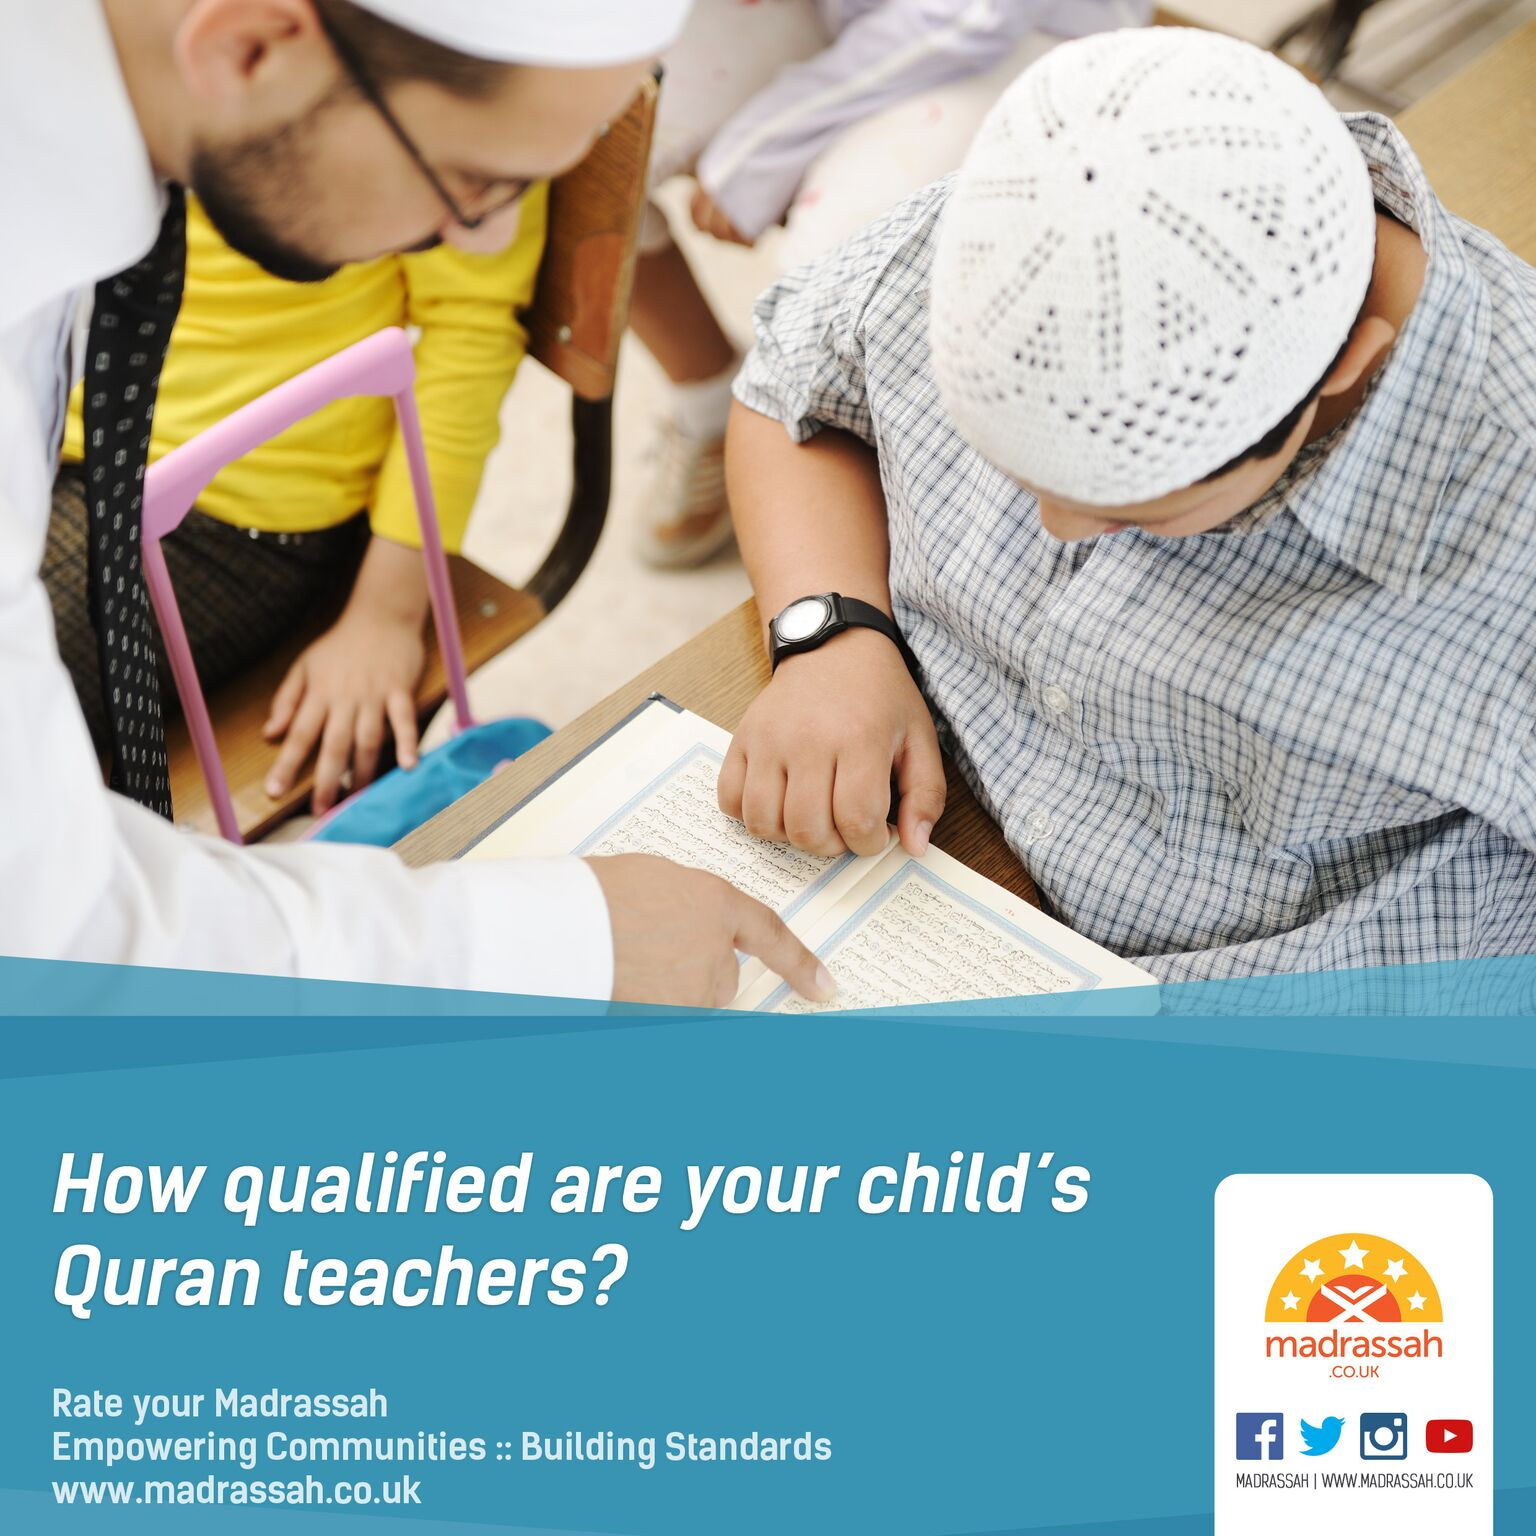 How qualified are your child's Quran teachers